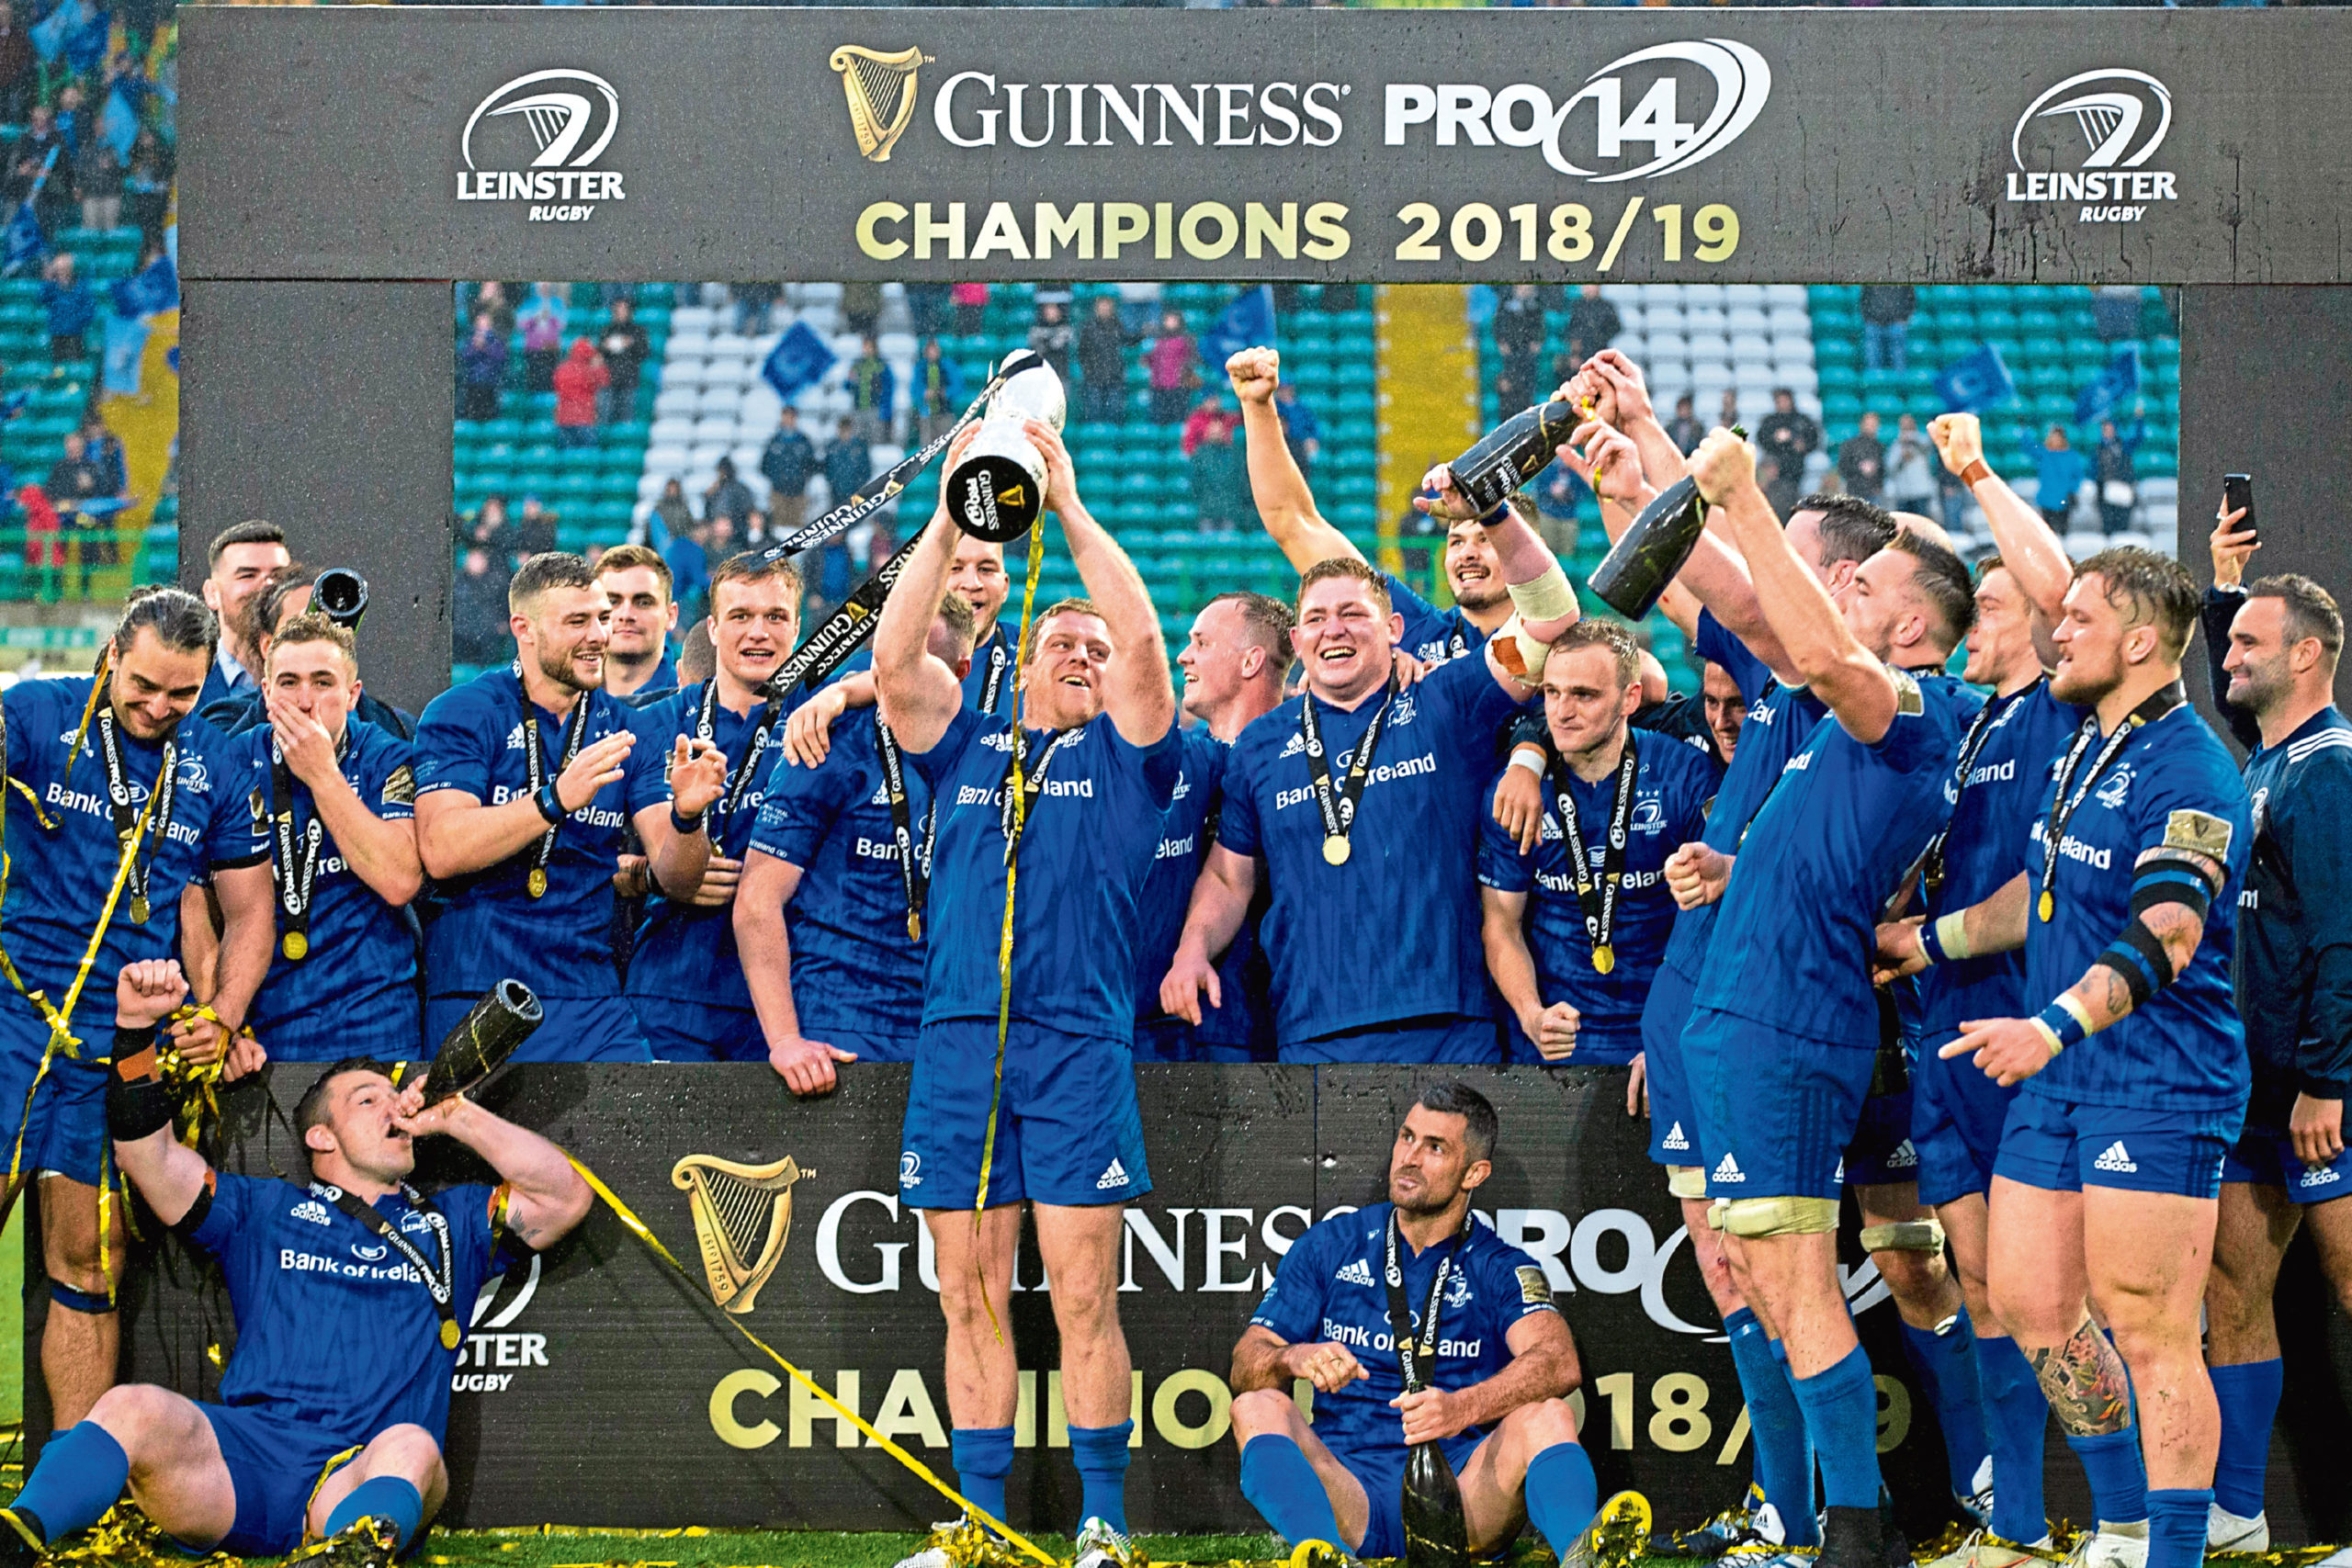 Last year's PRO14 champions Leinster.